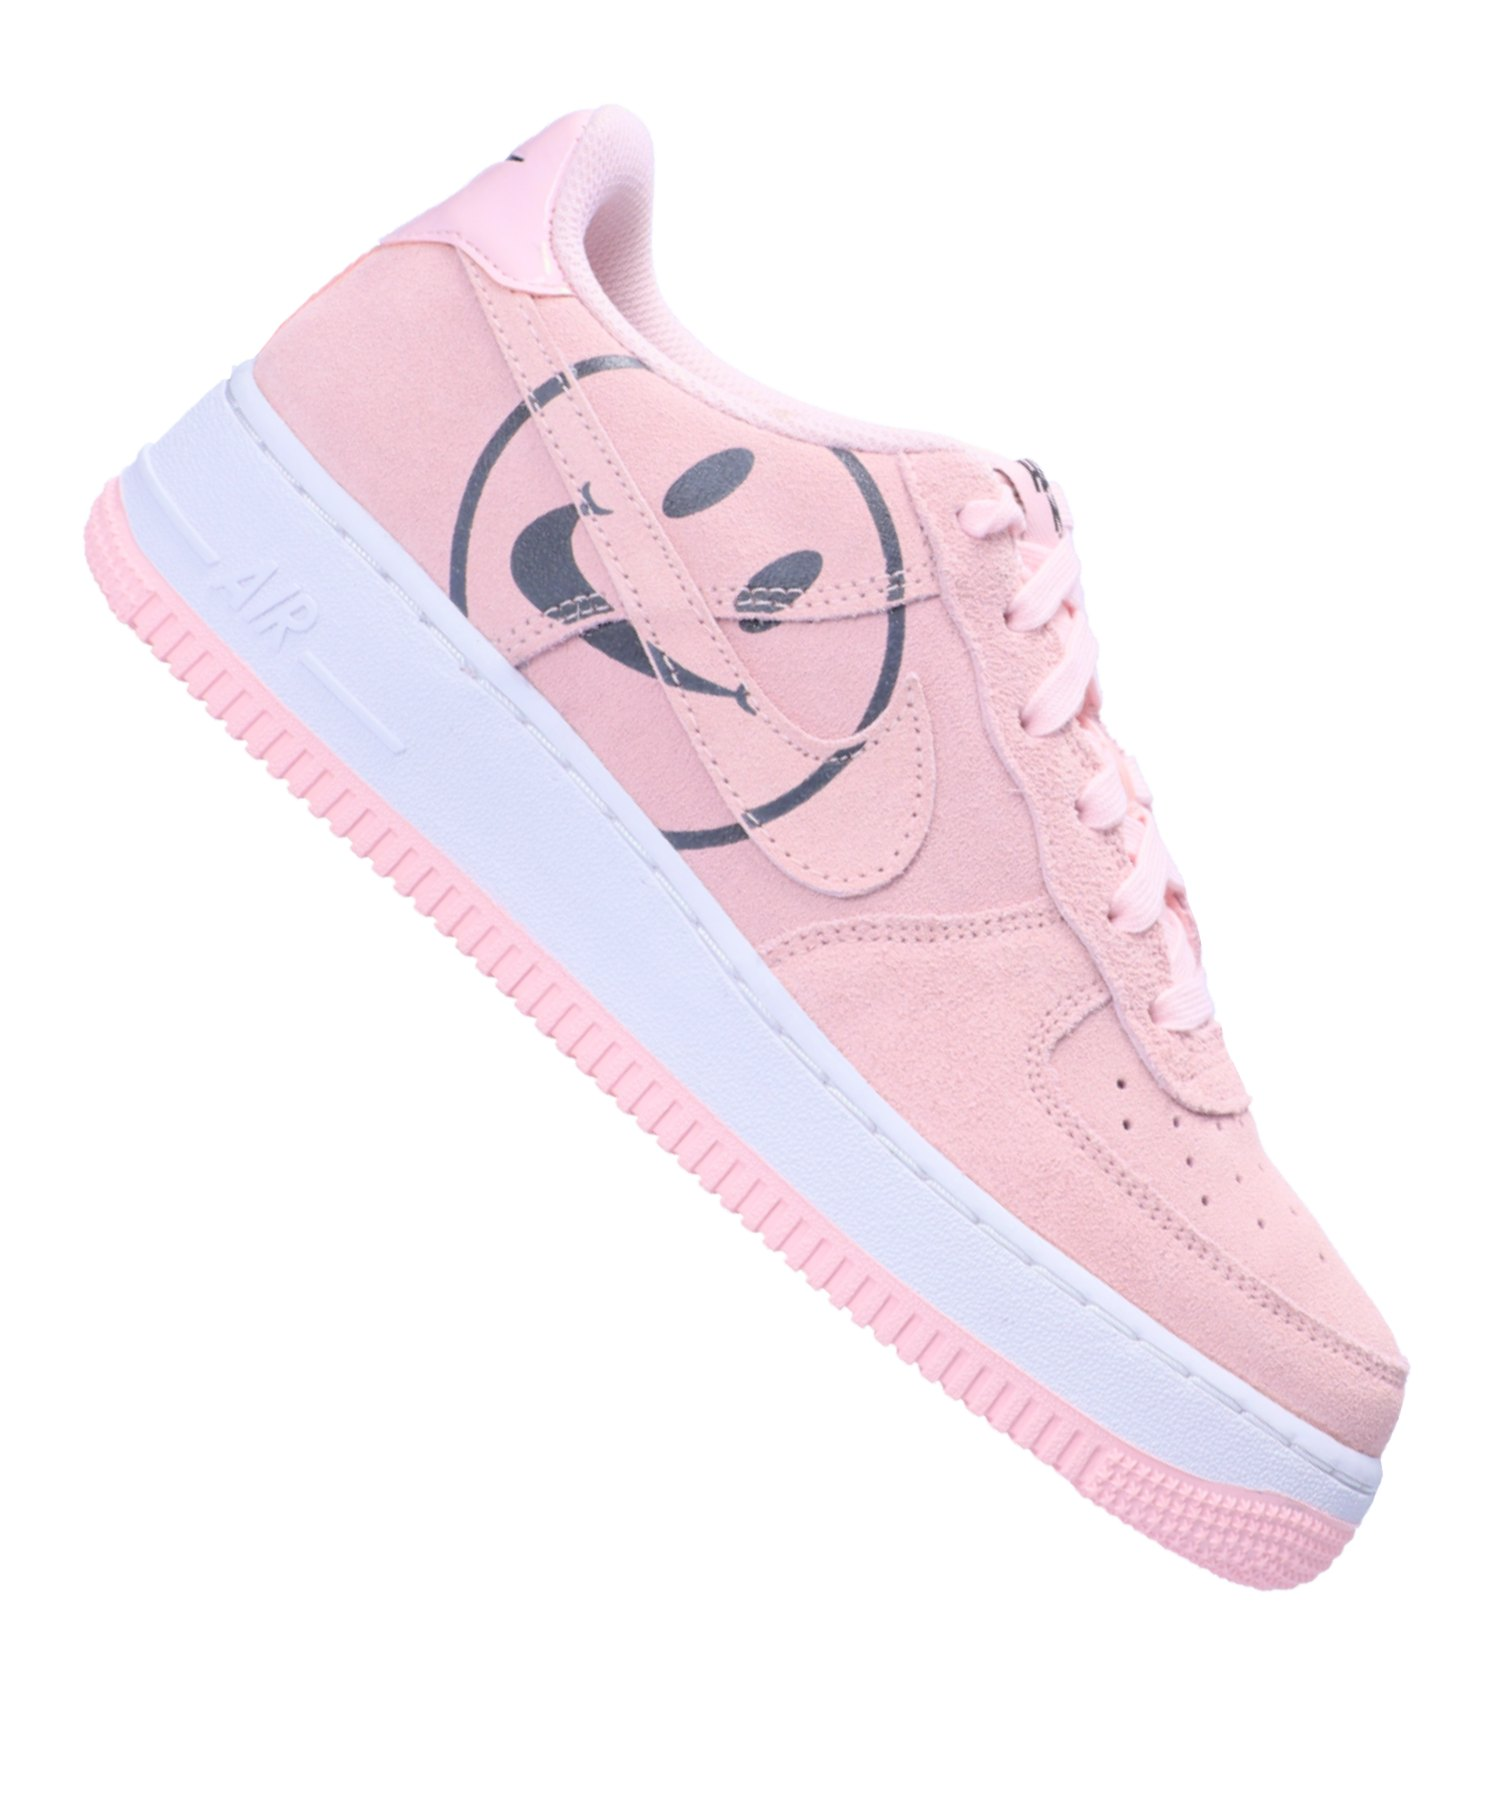 nike air force 1 kinder rosa